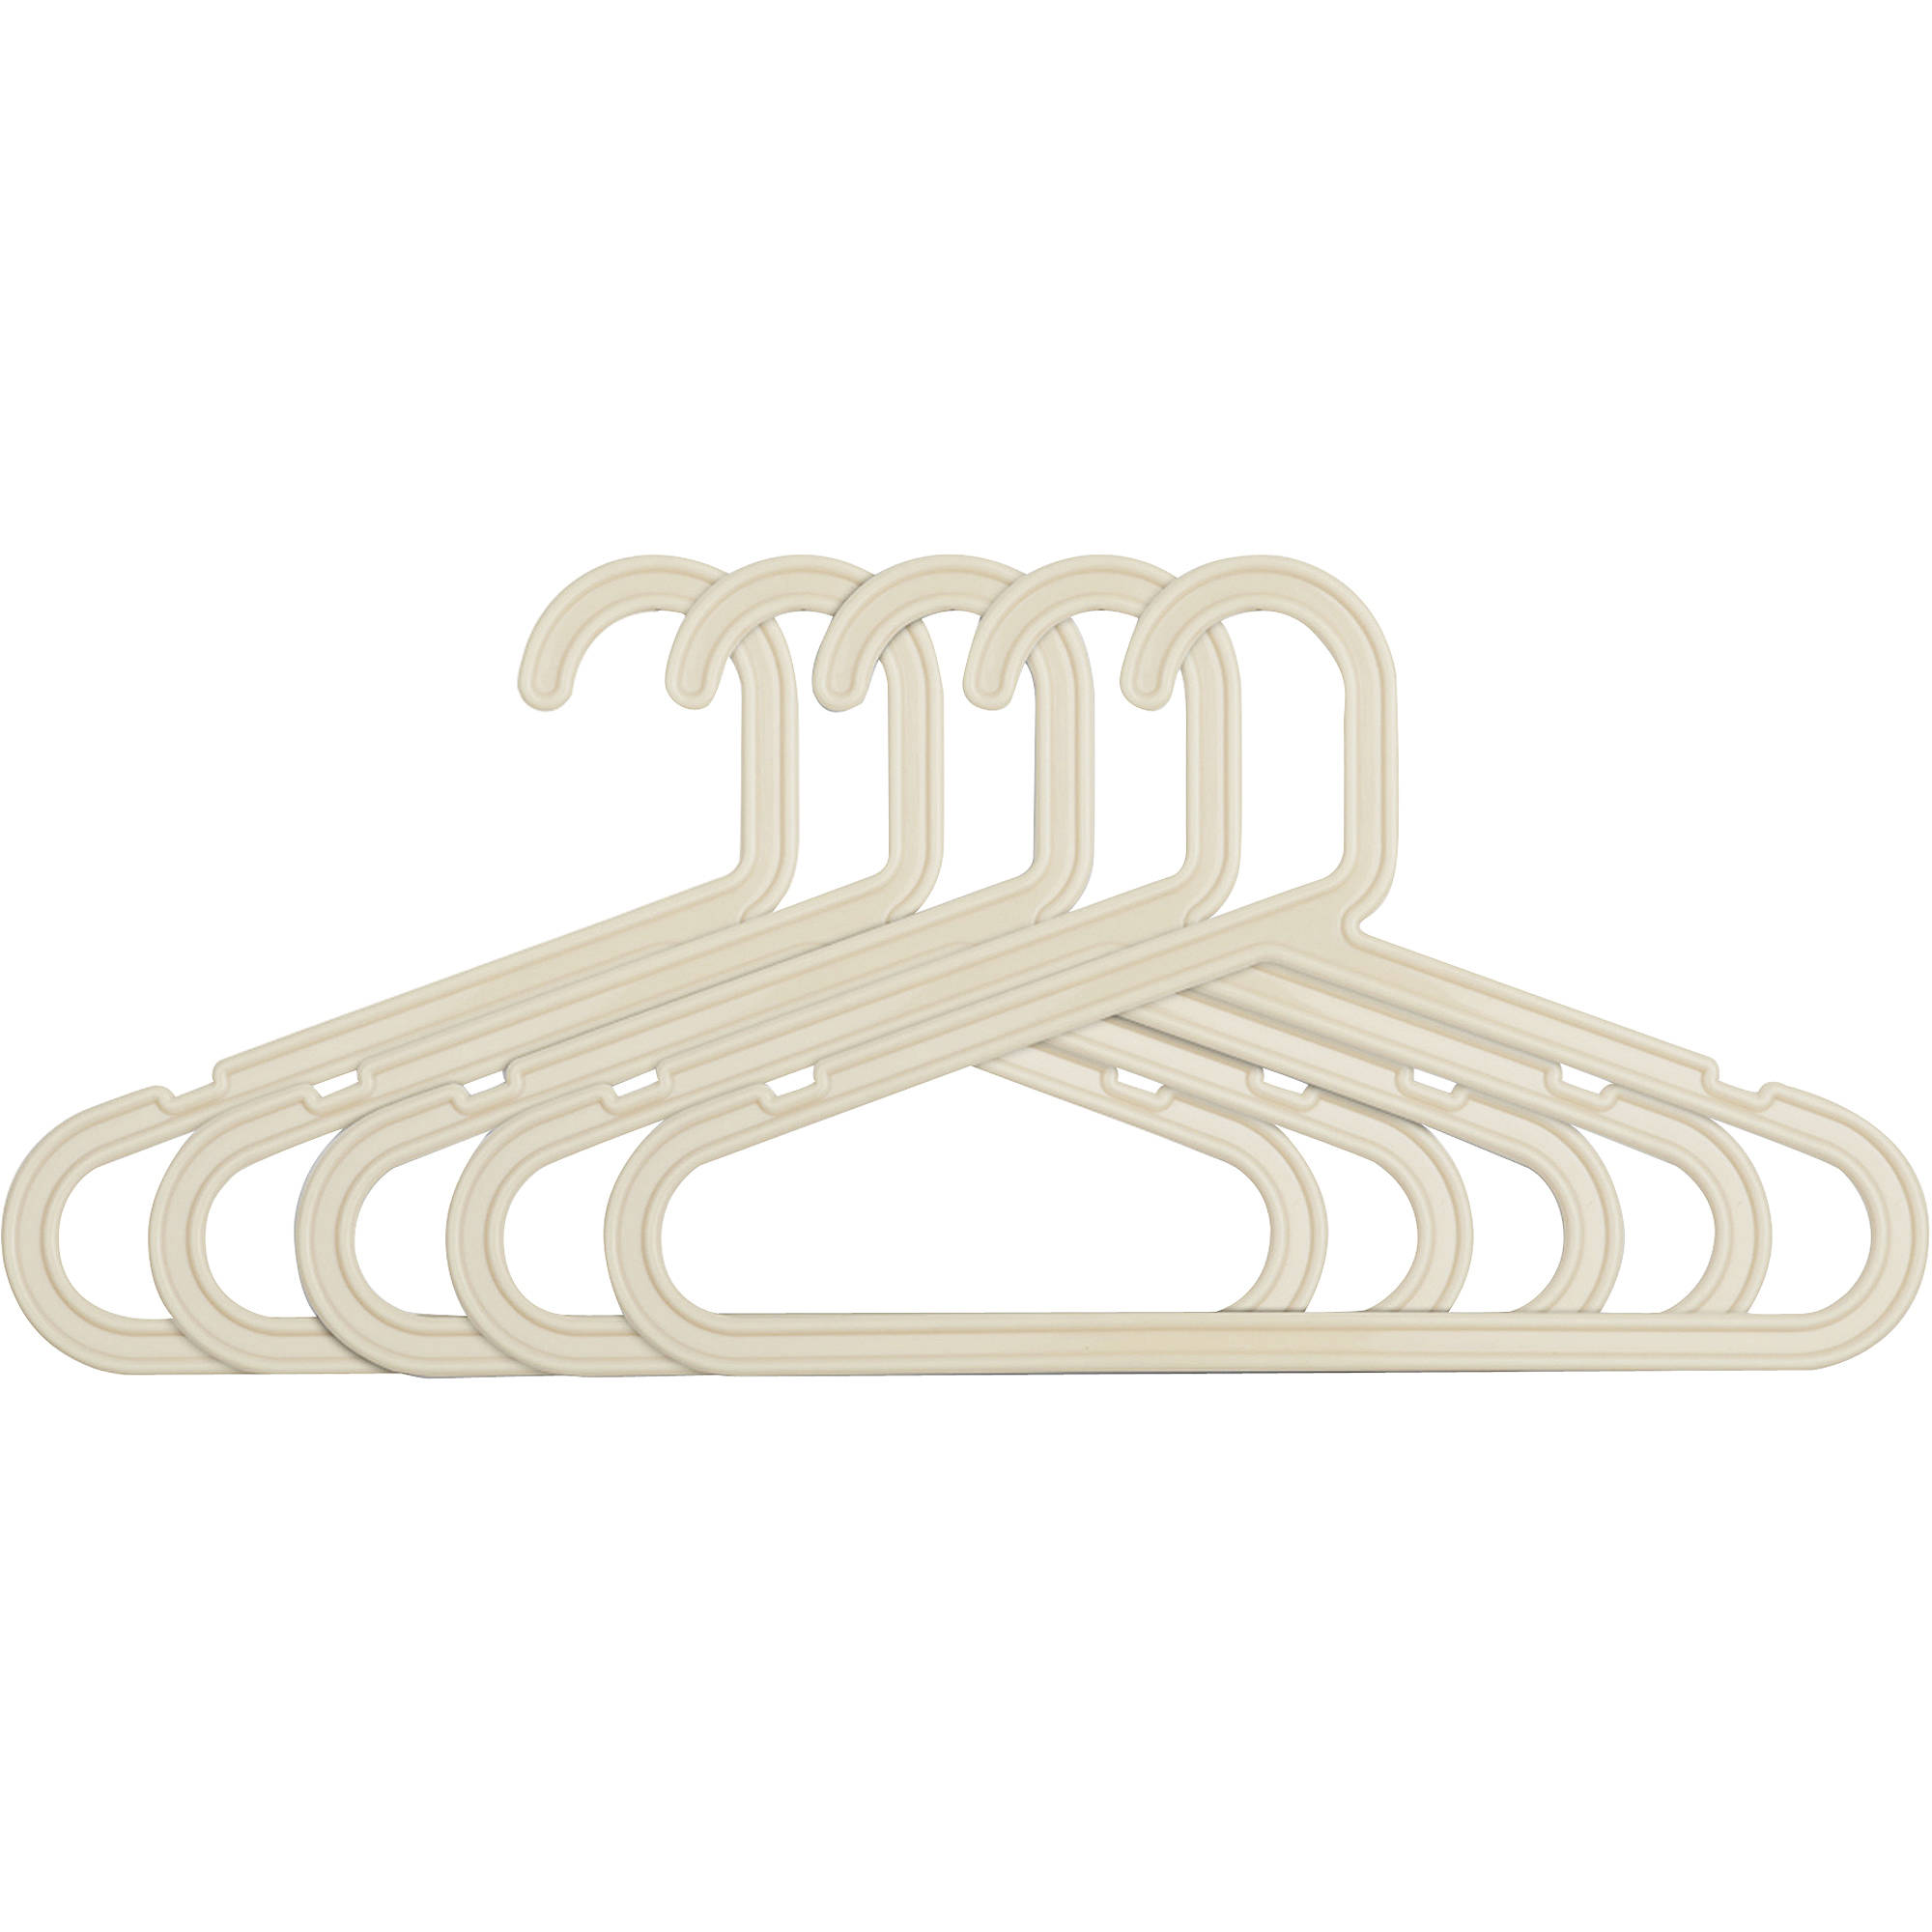 Slim Design Baby Plastic Hangers, Set of 30, Beige